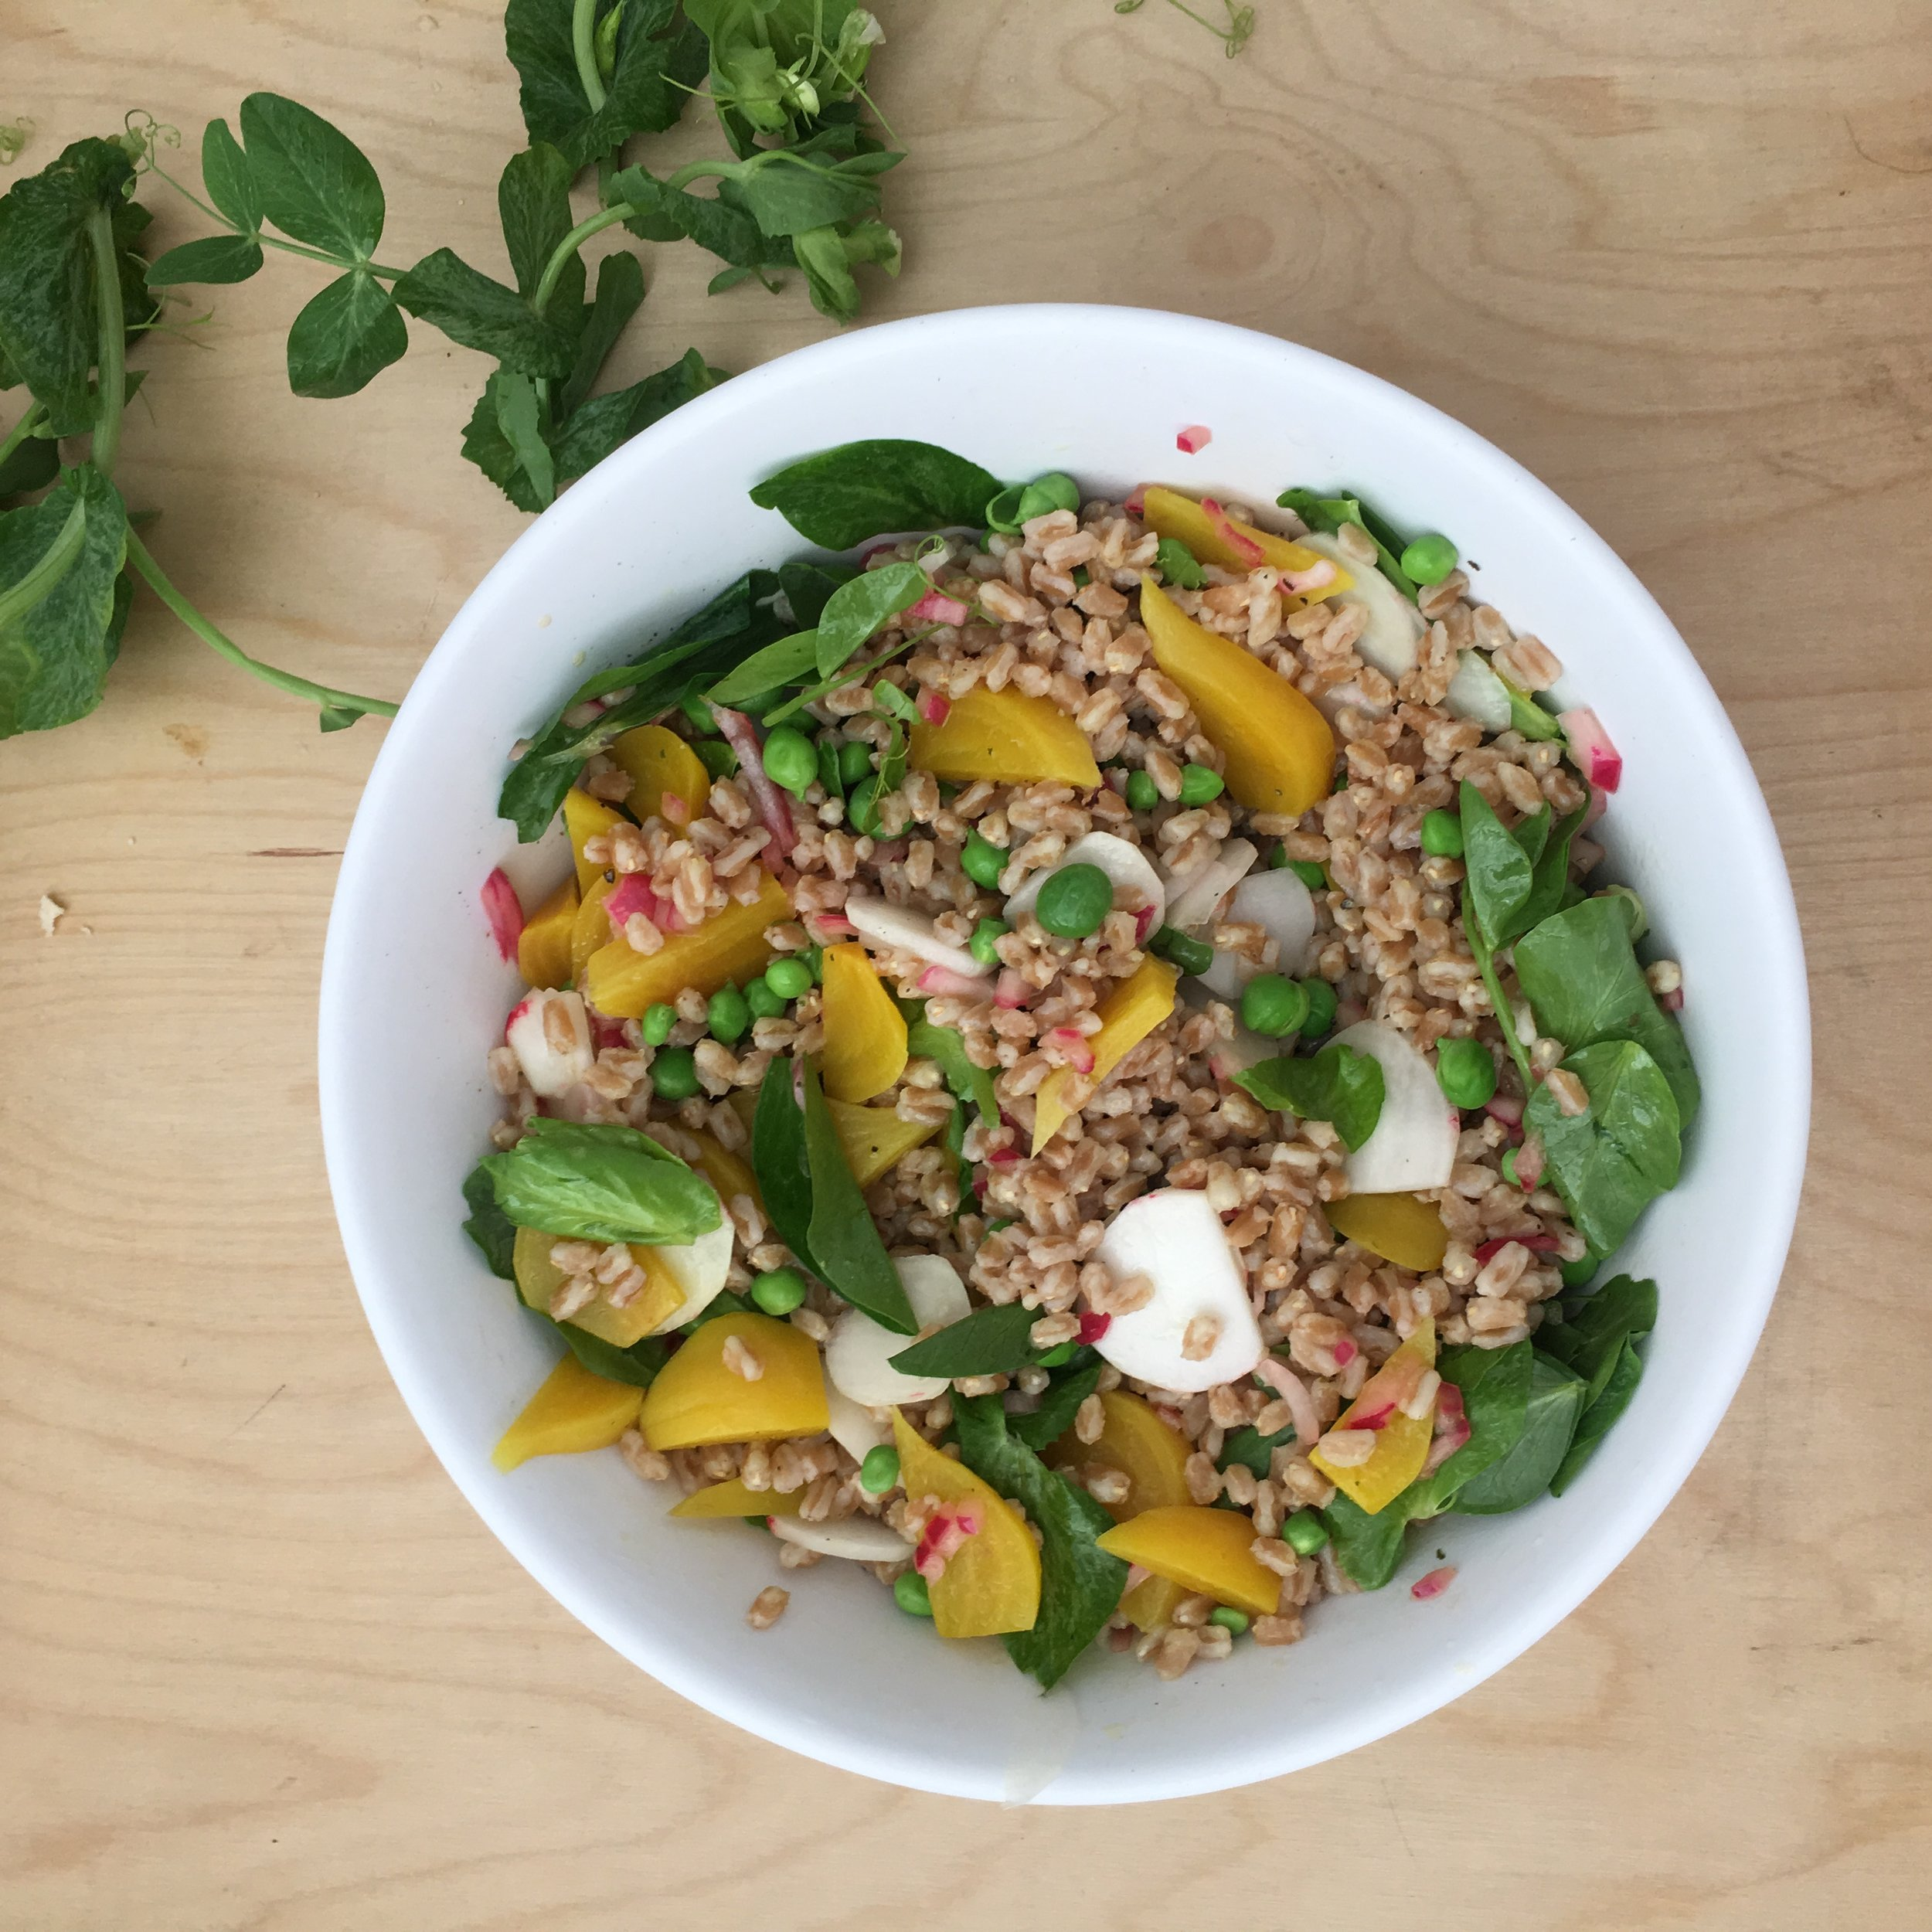 Farro bowl with fresh peas and pea shoots,radishes, and golden baby beets, all tossed with a spirited dressing